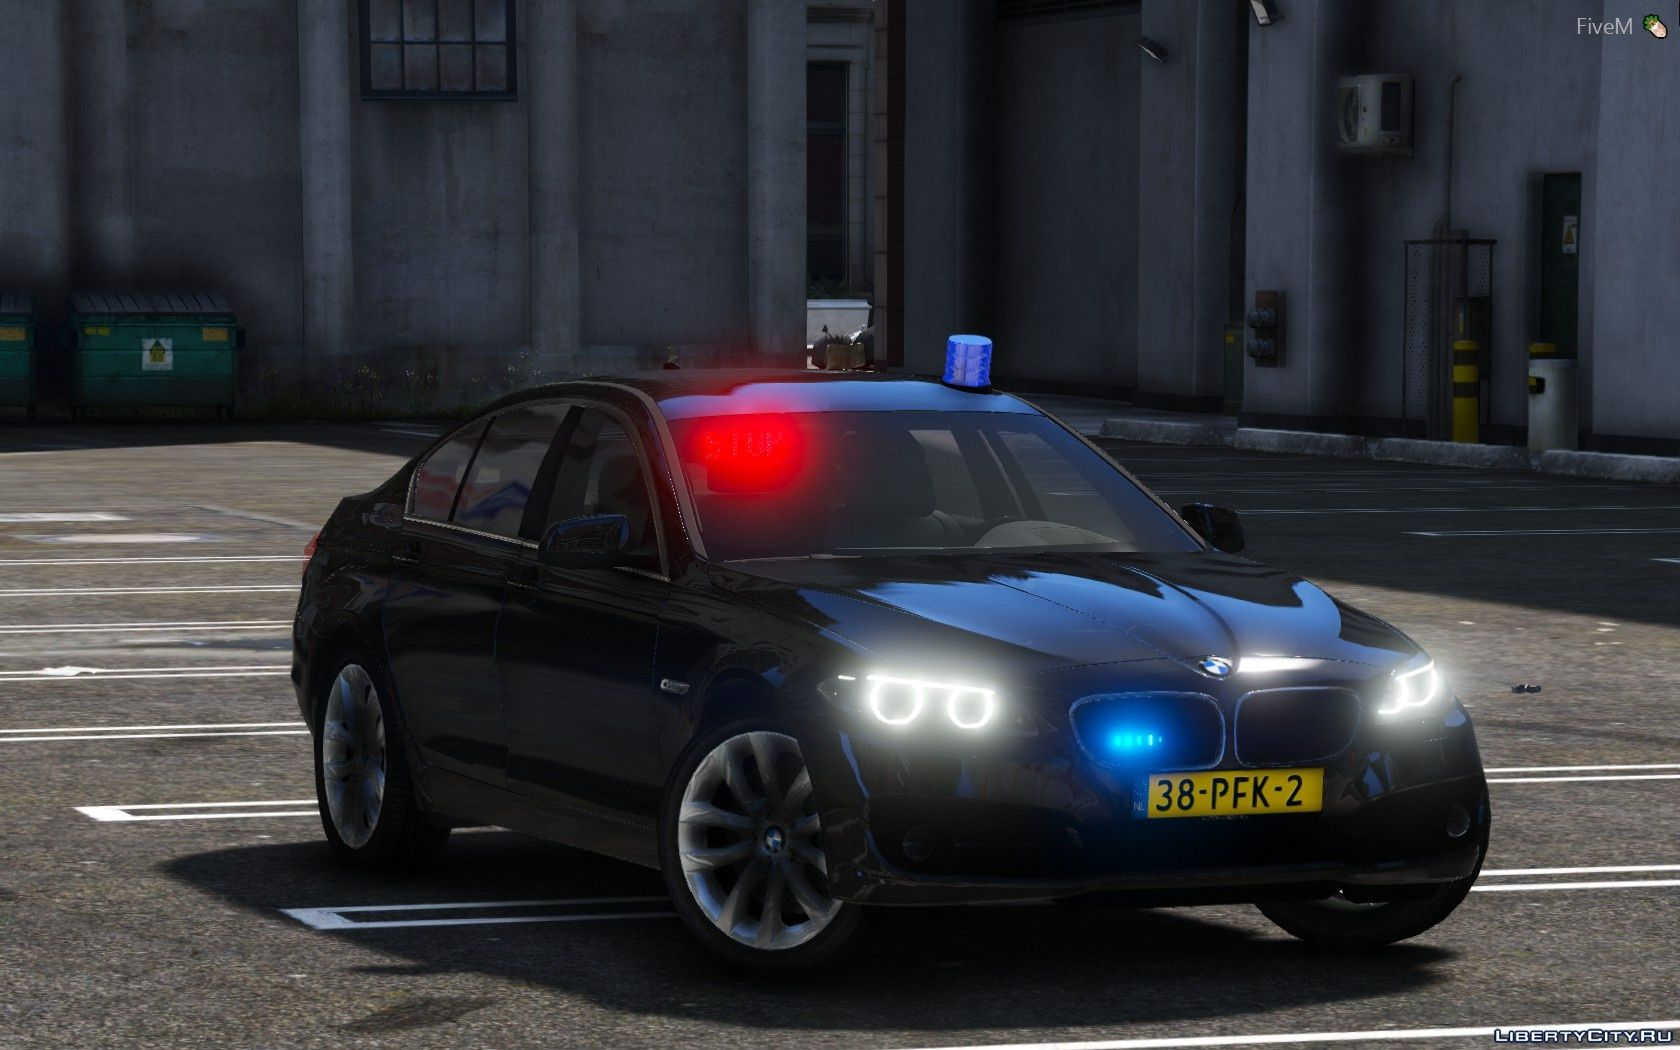 Replacement of police4 yft in GTA 5 (72 file)